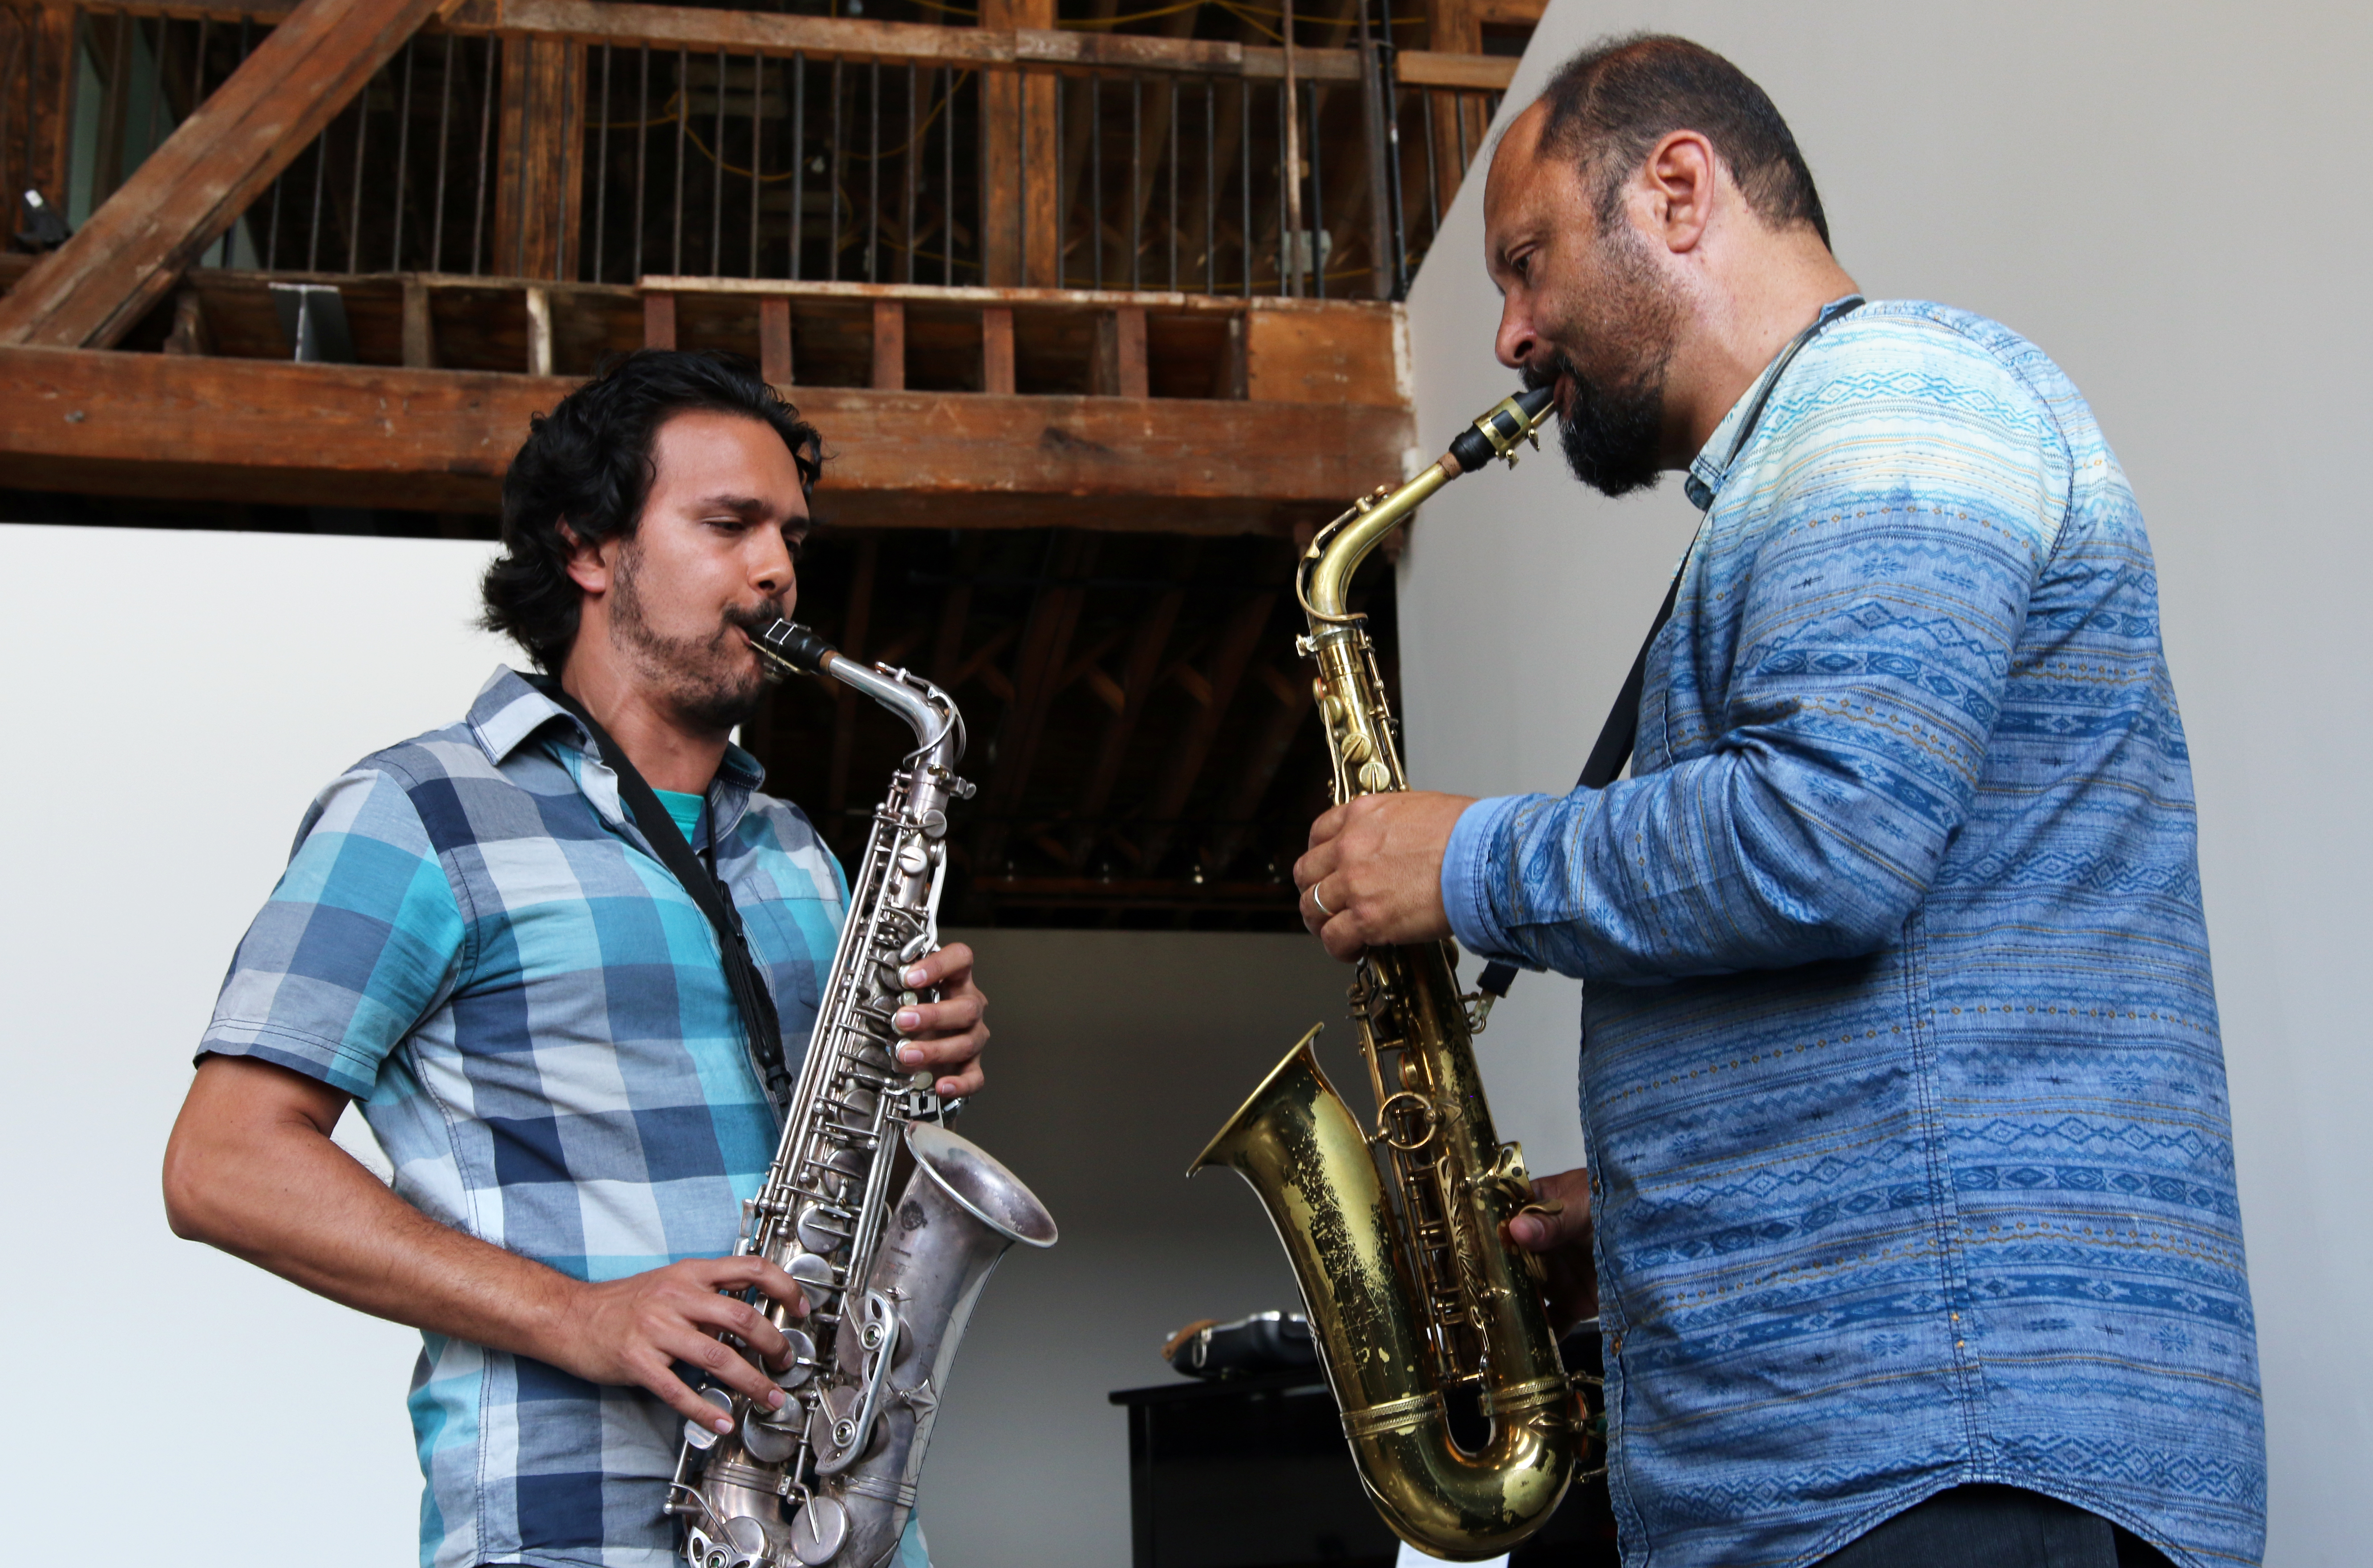 Aakash Mittal and Hafez Modirzadeh facing each other playing alto saxophones.